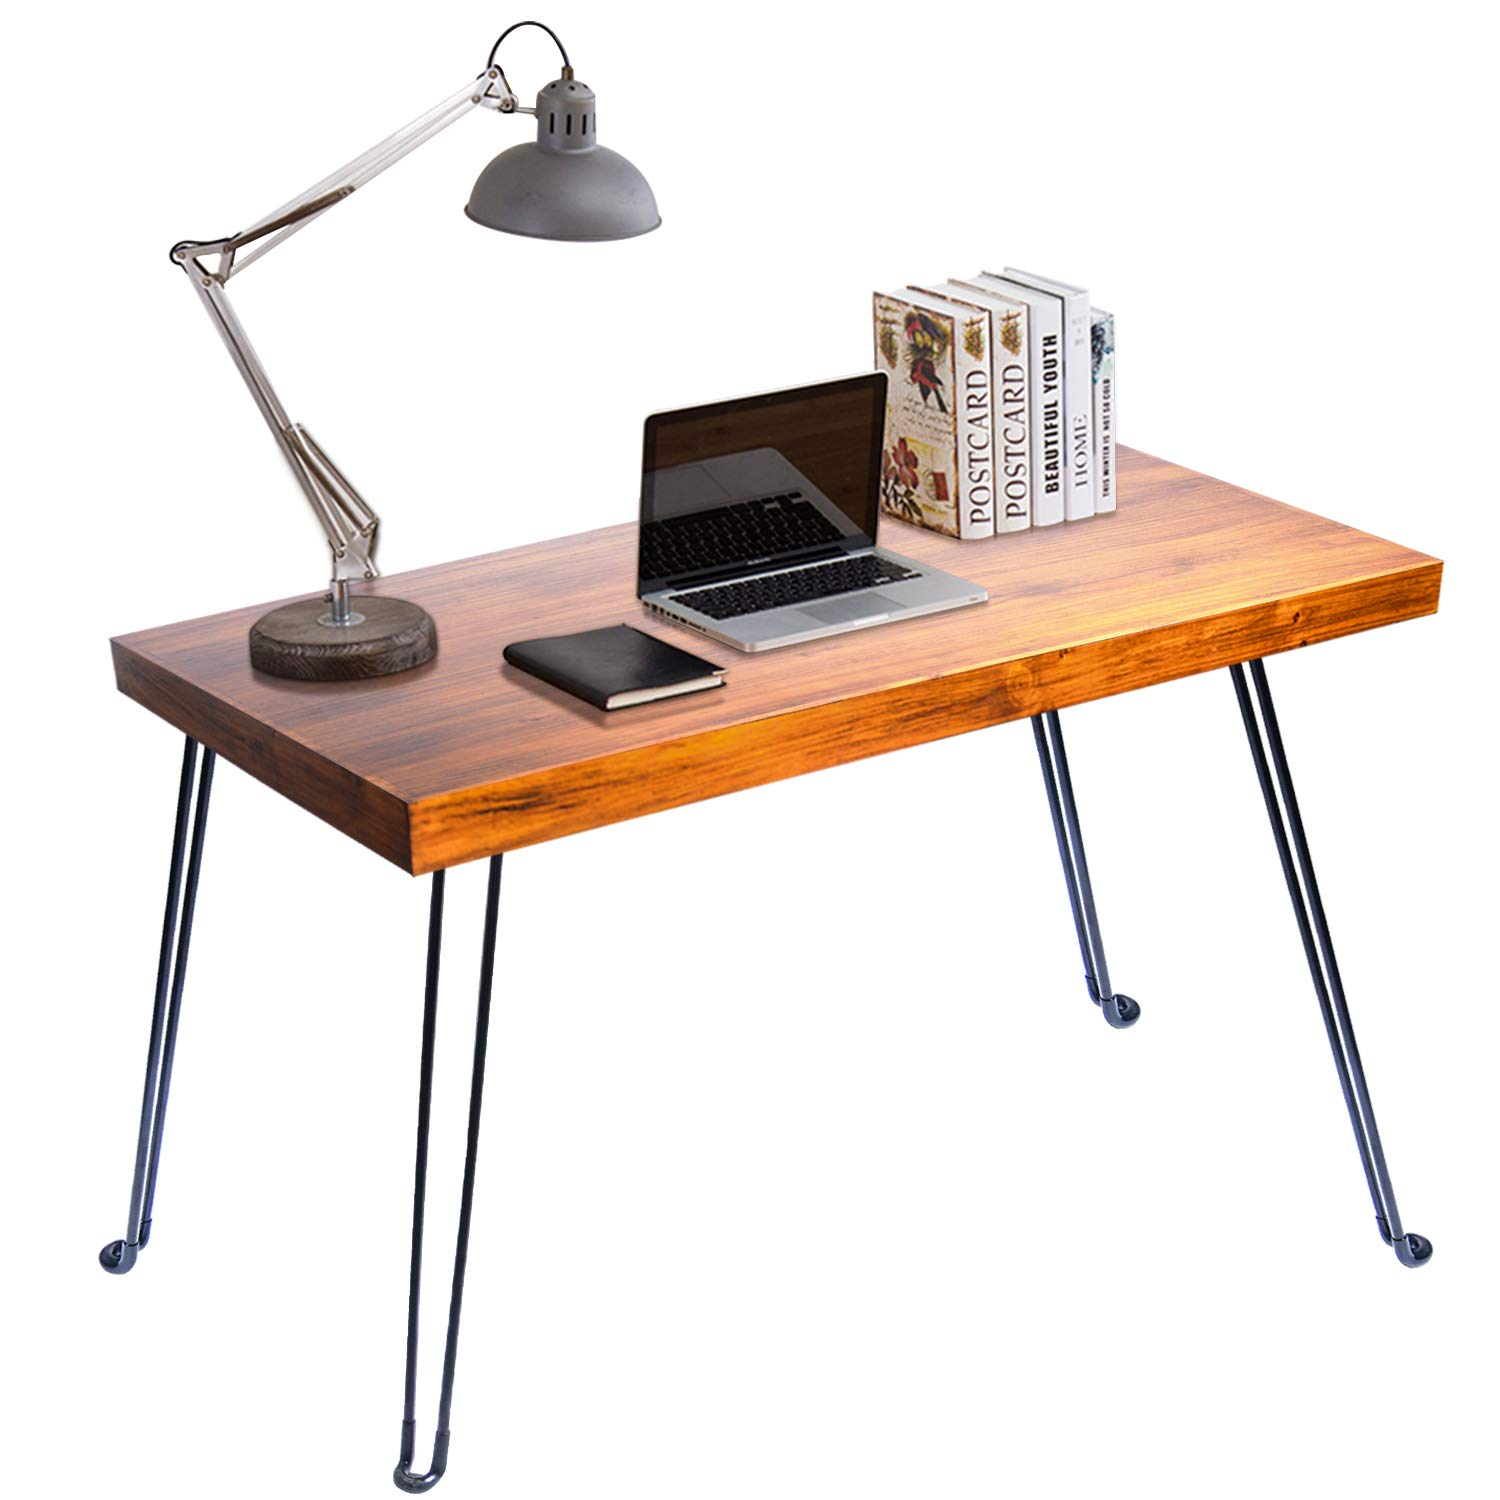 Folding Computer Desk, WishaLife Modern Simple Desk Indutrial Style Laptop Table for Home Office No Need to Install Office Light Desk by WishaLife